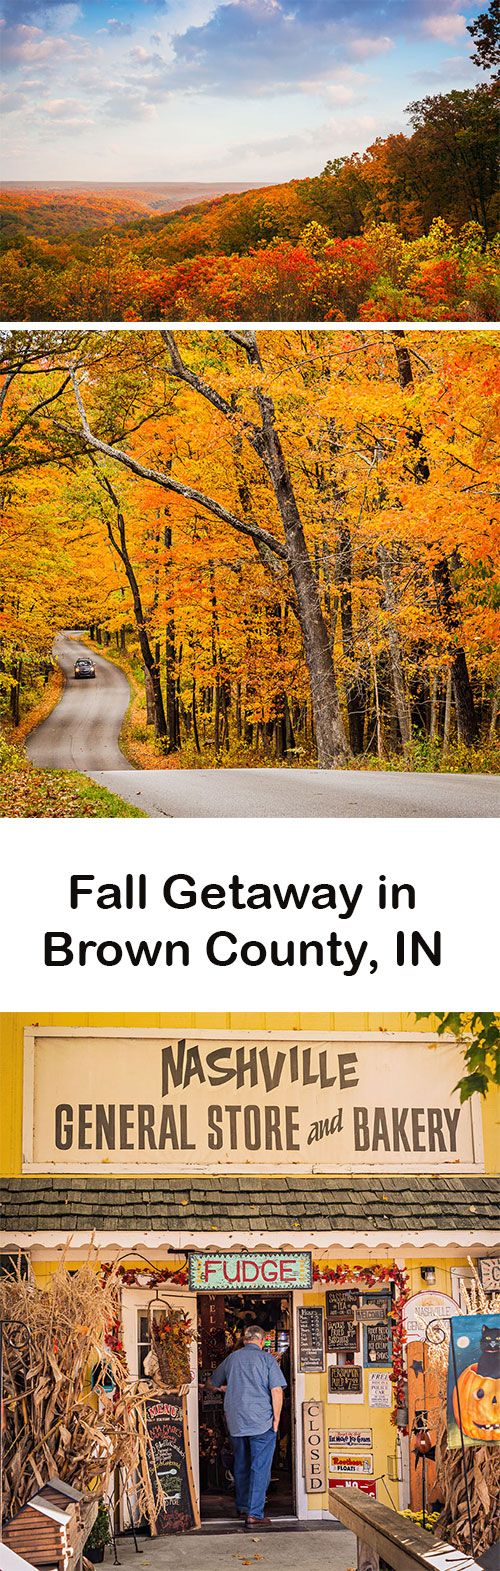 Just one hour from downtown Indianapolis, Brown County's fall show continues to captivate visitors more than a century after artists first fell under its spell. Read about our fall getaway: